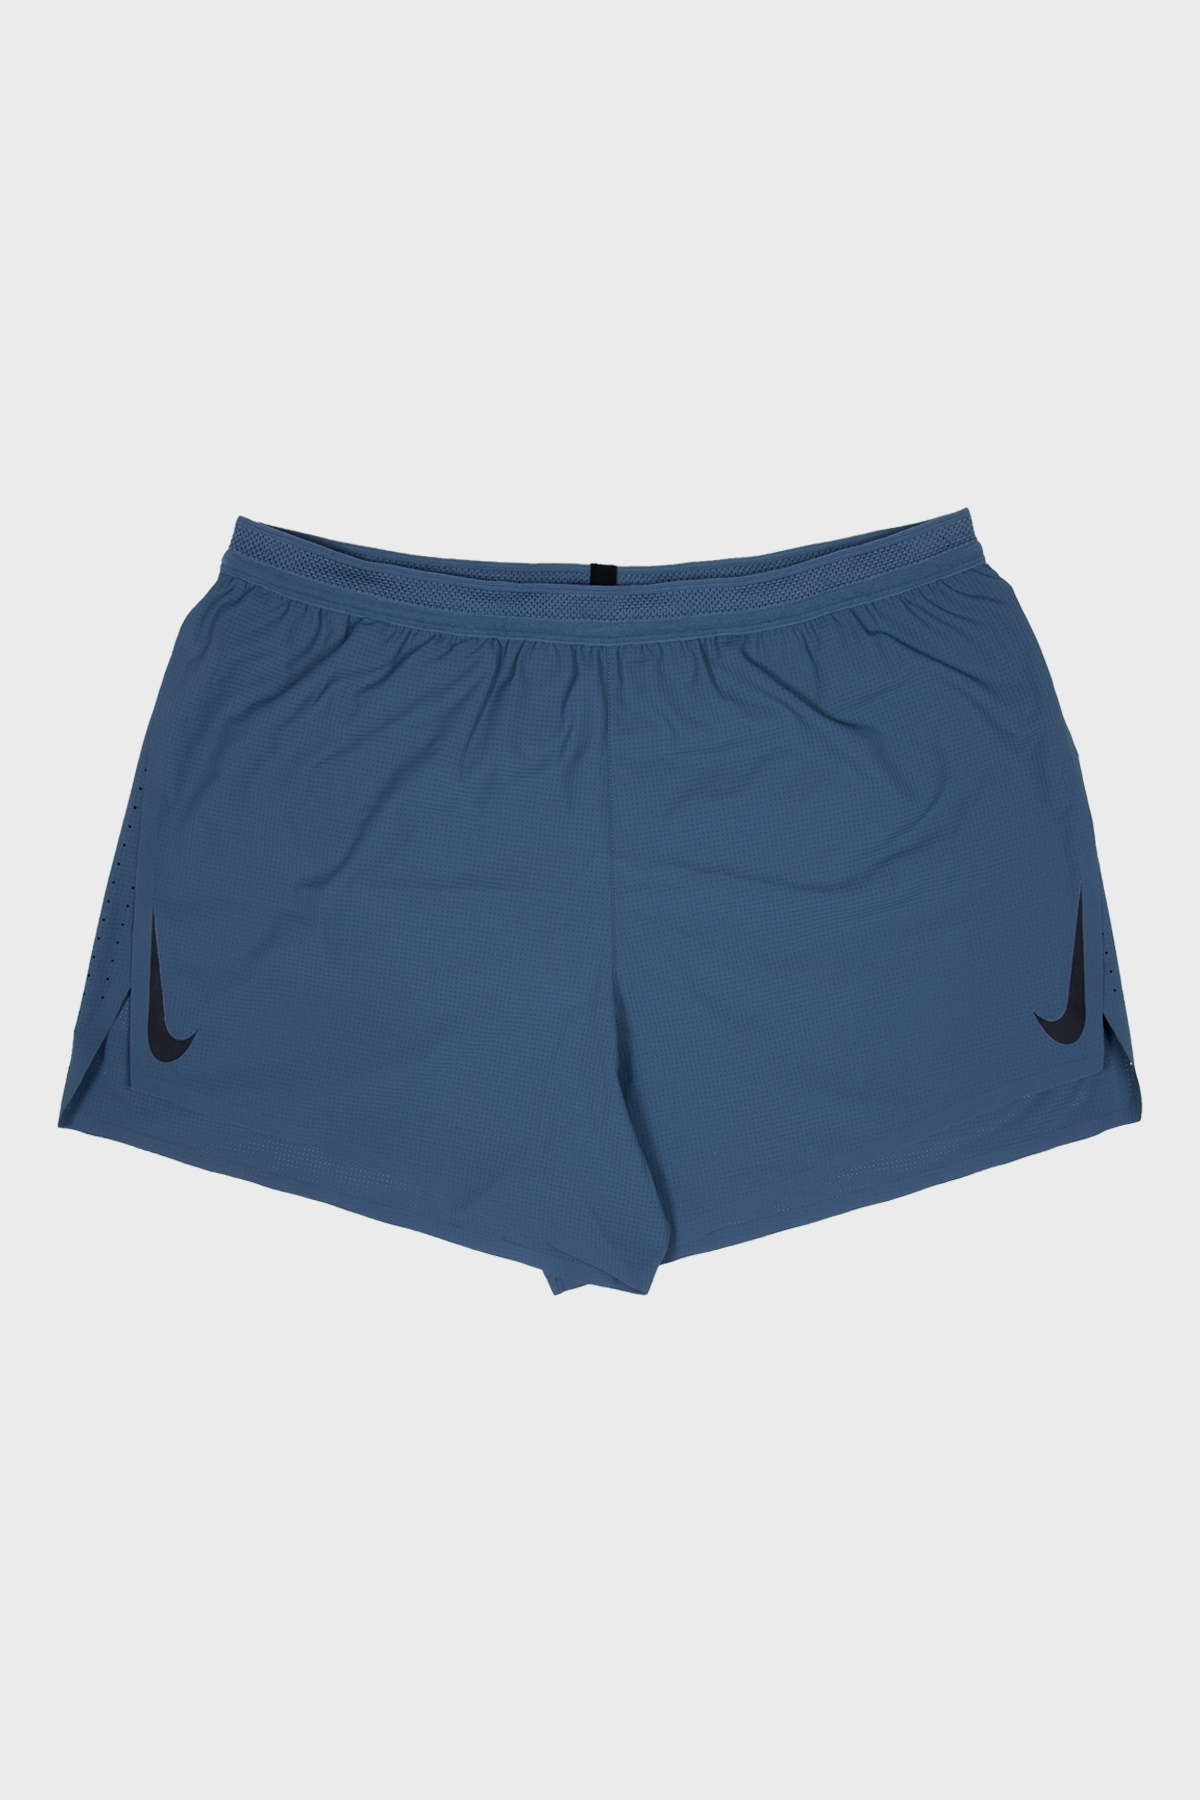 Nike - AeroSwift short - Electric storm Black